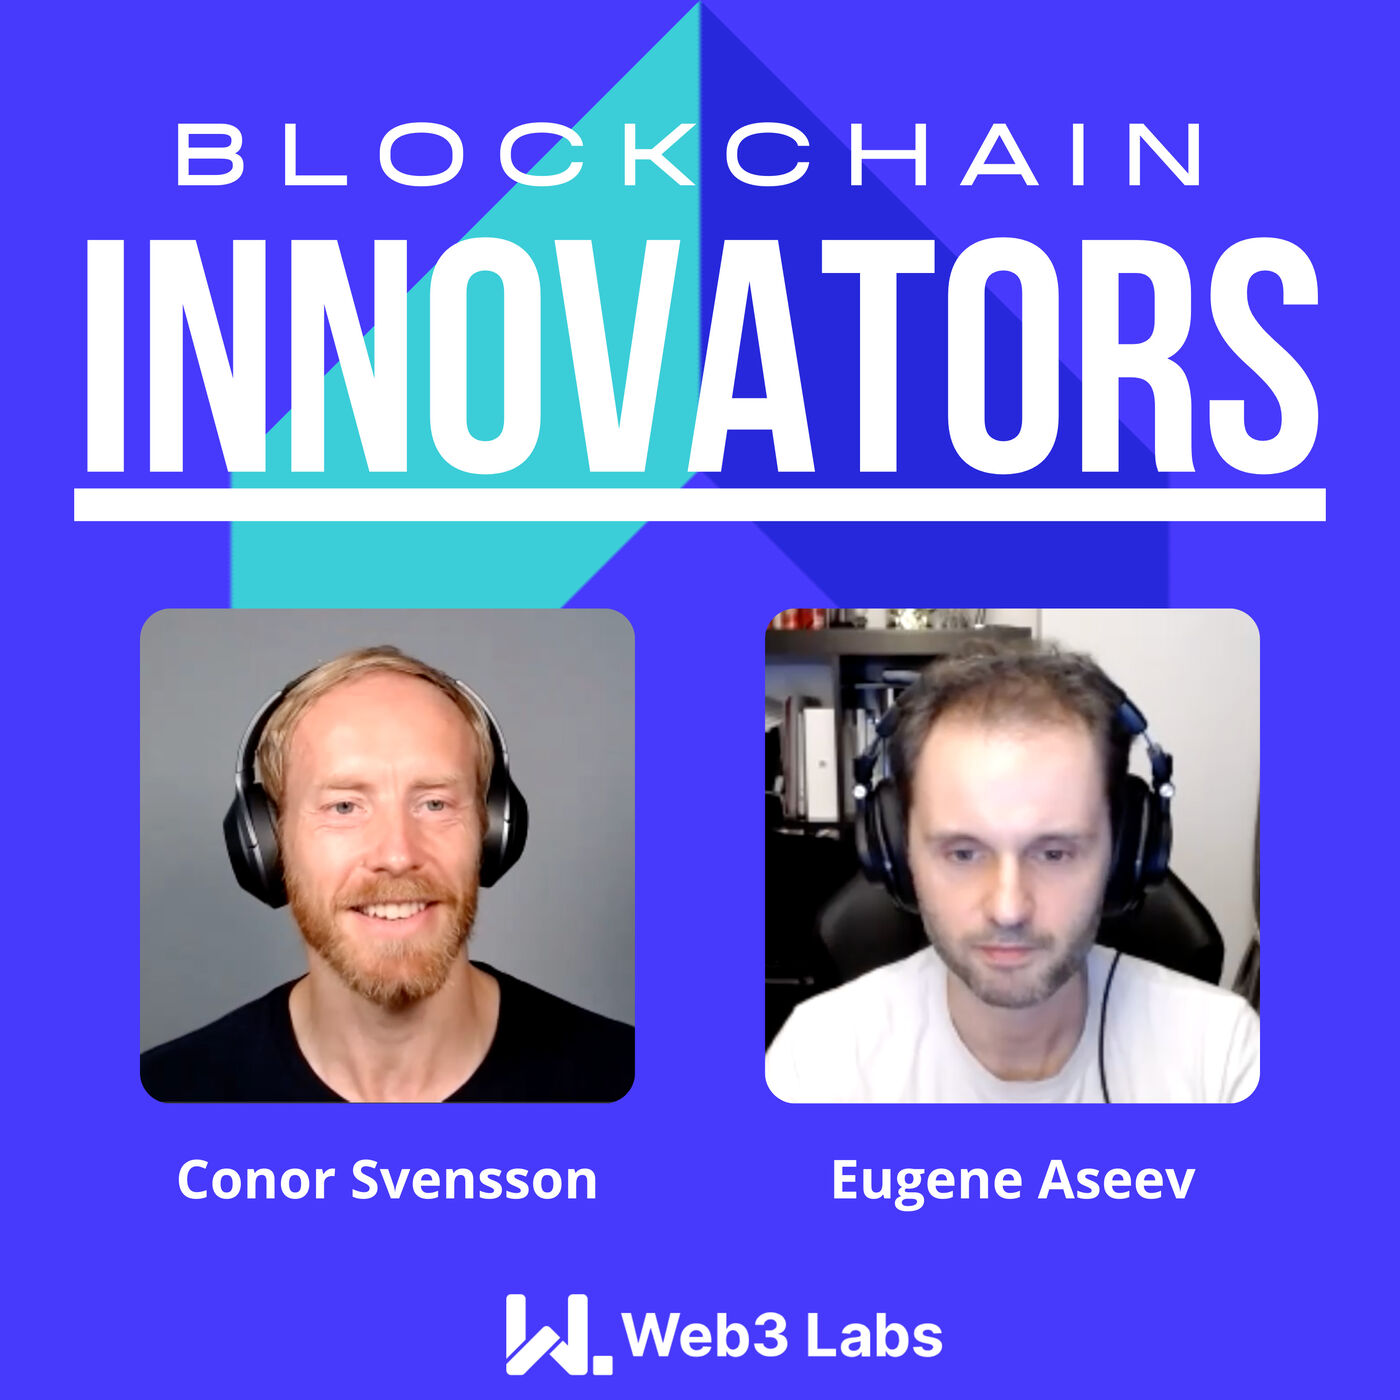 Blockchain Innovators with Conor Svensson and Eugene Aseev